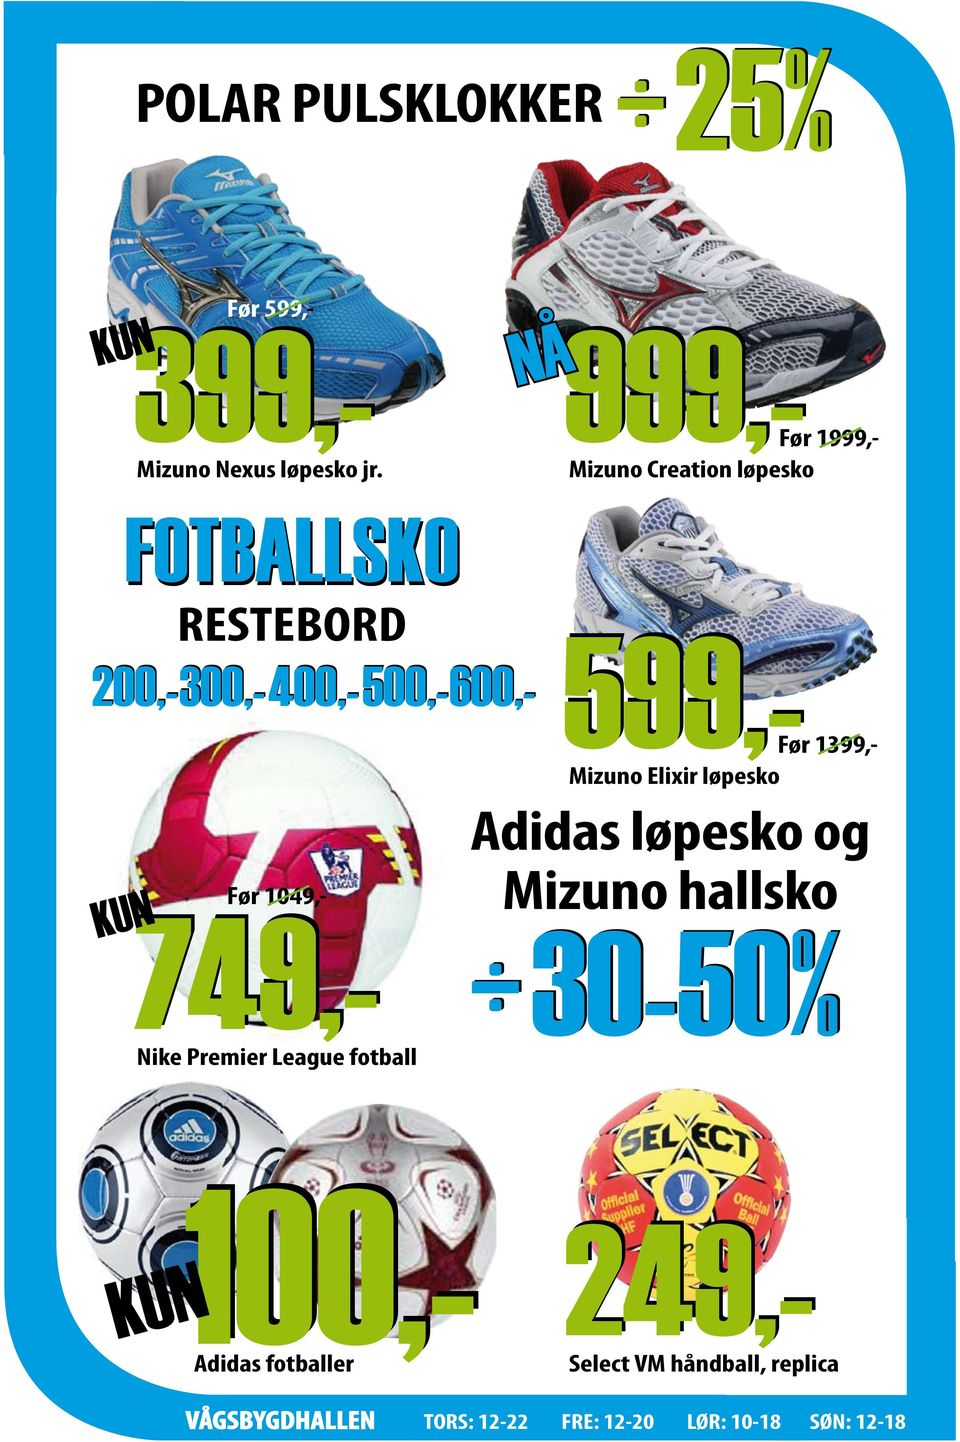 500,-600,- Før 19 Mizuno Creation løpesko 5 100,- 749,- Nike Premier League